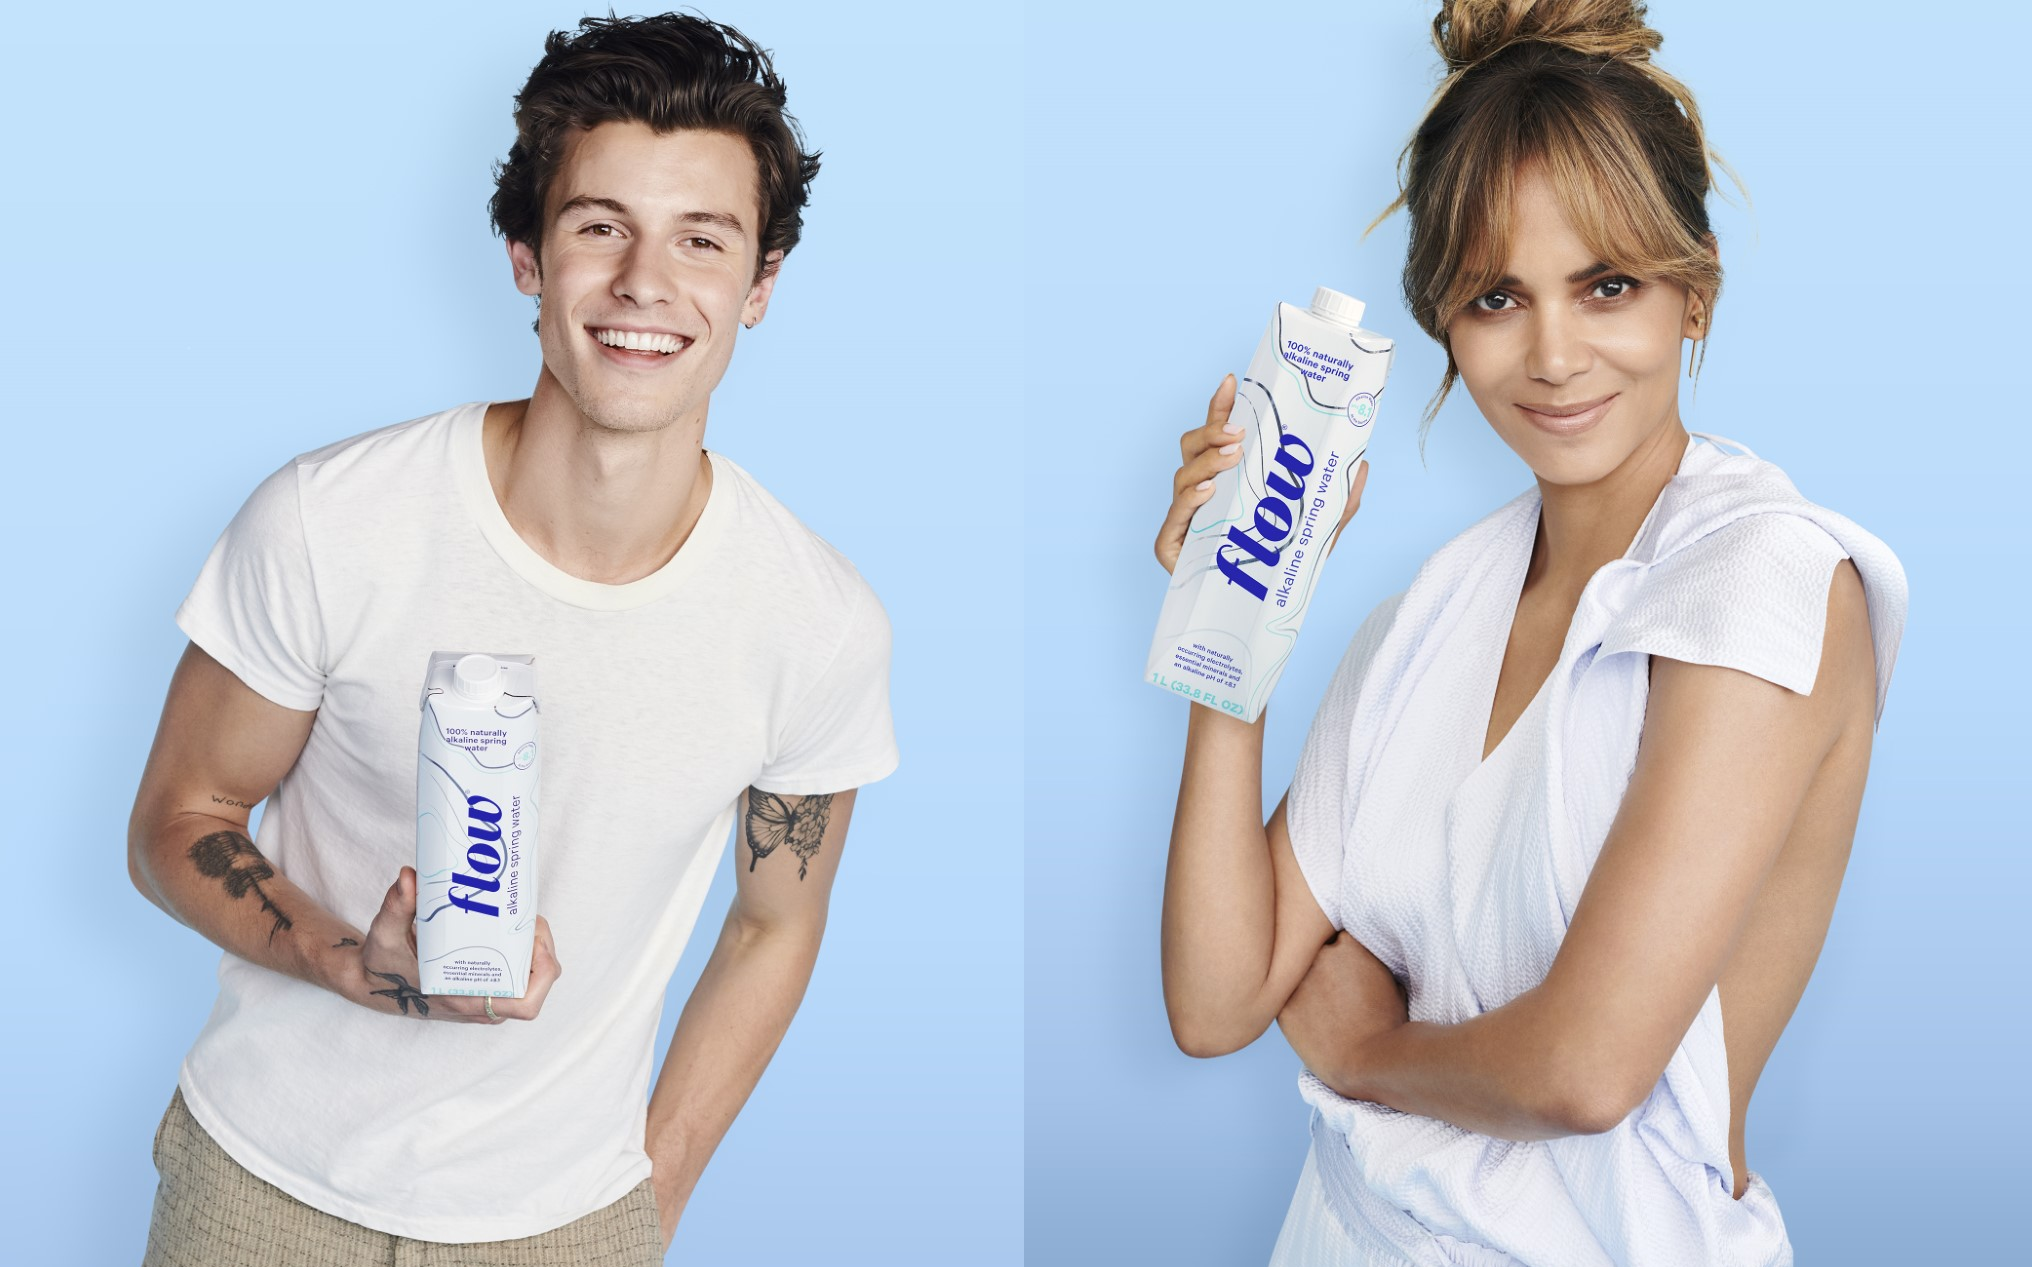 Shawn Mendes, Halle Berry, Tapped for New Alkaline Water Brand Campaign - Rolling Stone